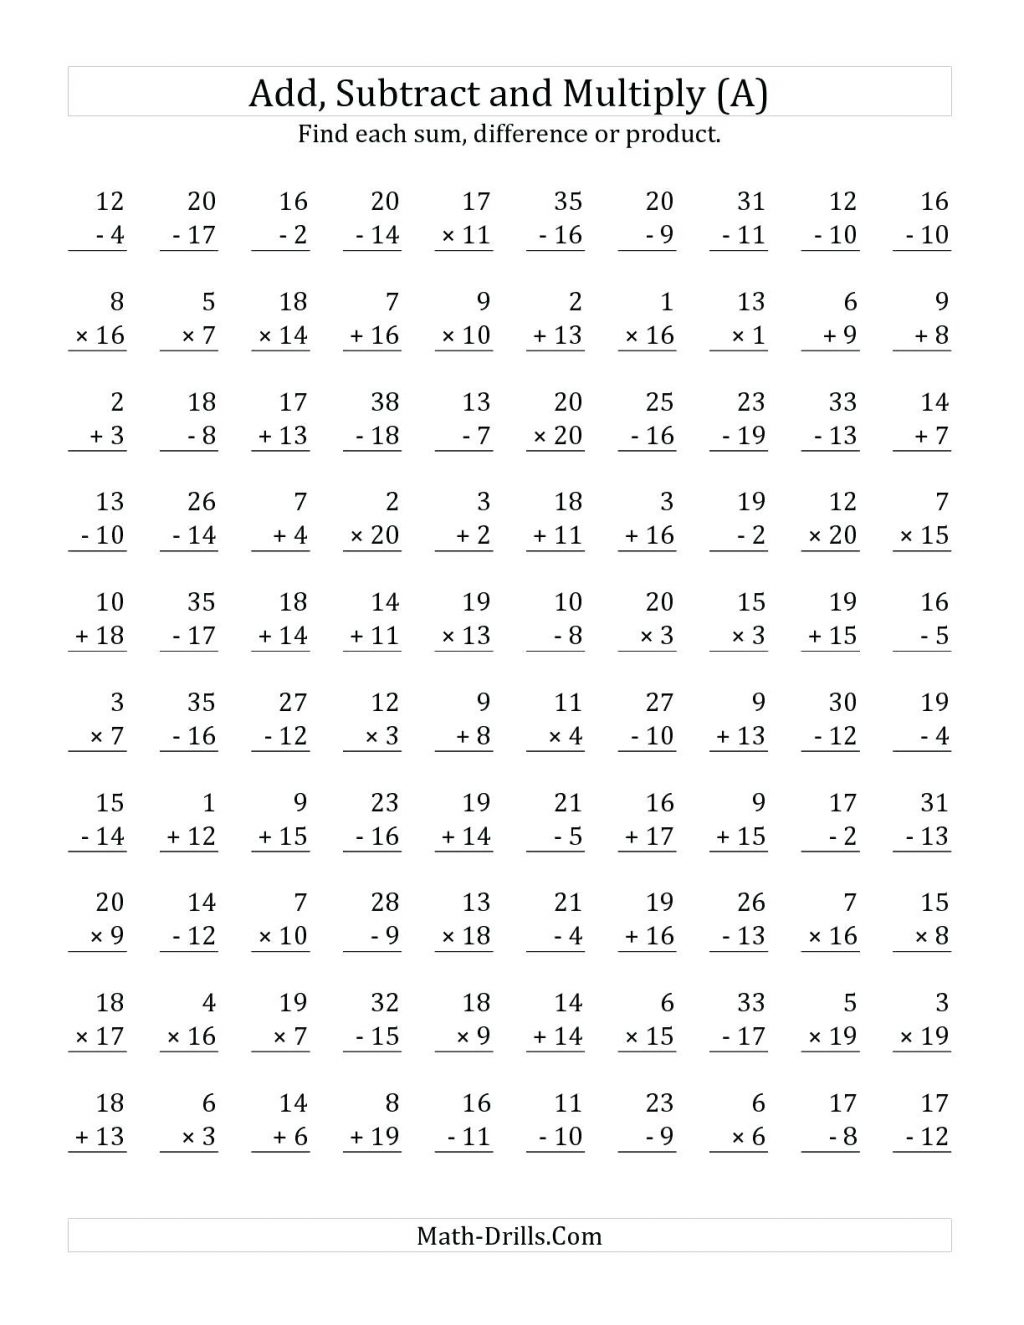 Subtraction Worksheet For 1St Grade First Adding Tens Printable With   Mad Minute Math Subtraction Worksheets Printable